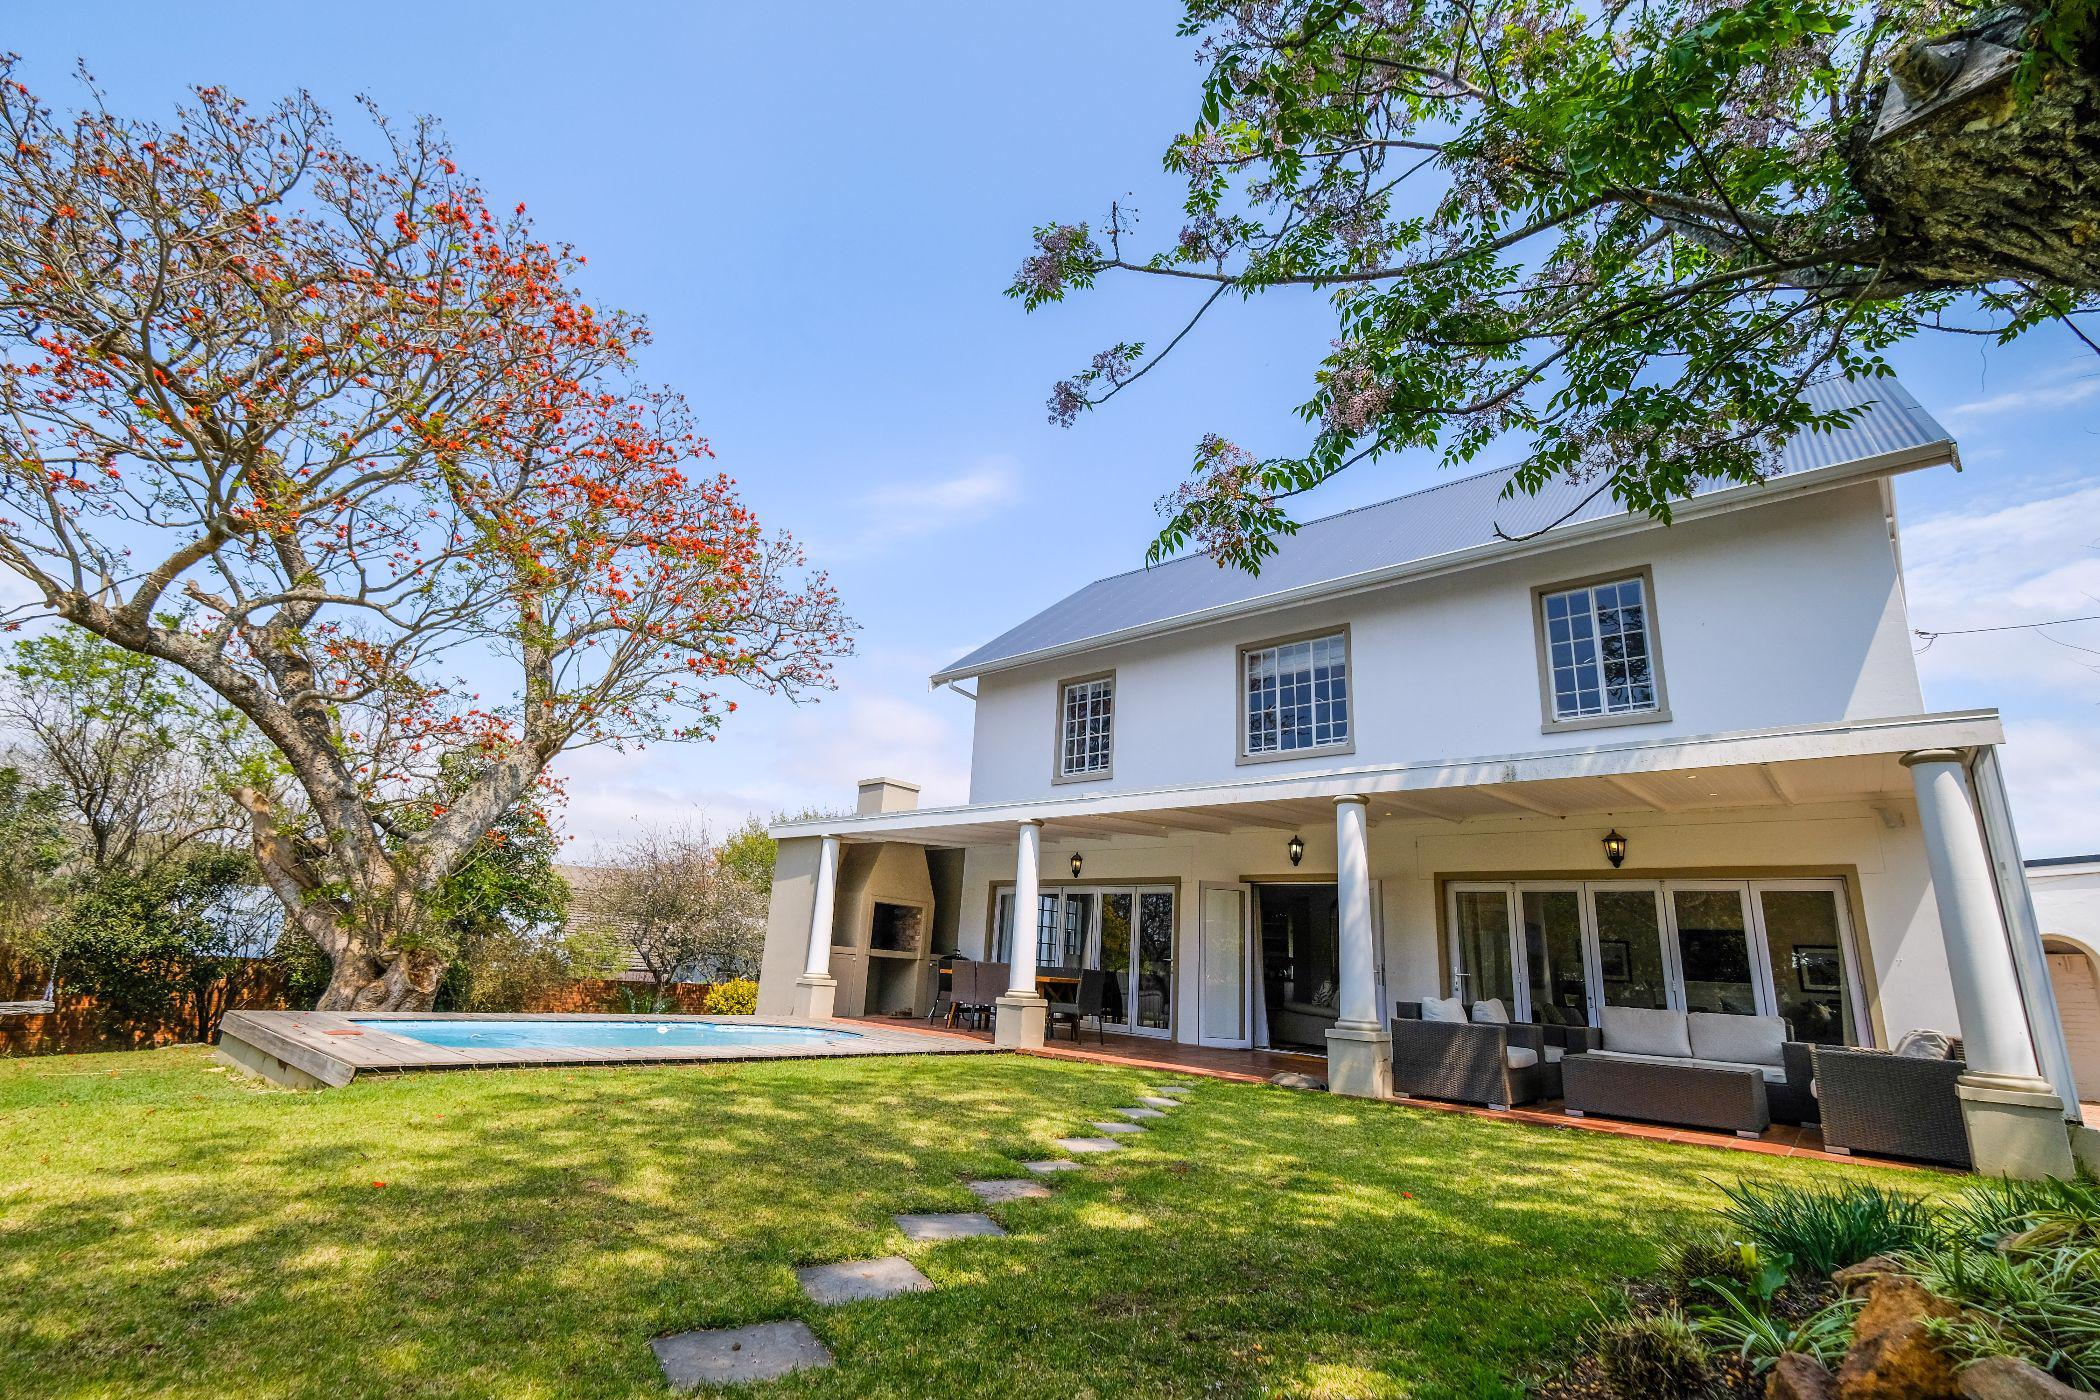 3 bedroom house for sale in West Hill (Makhanda (Grahamstown))